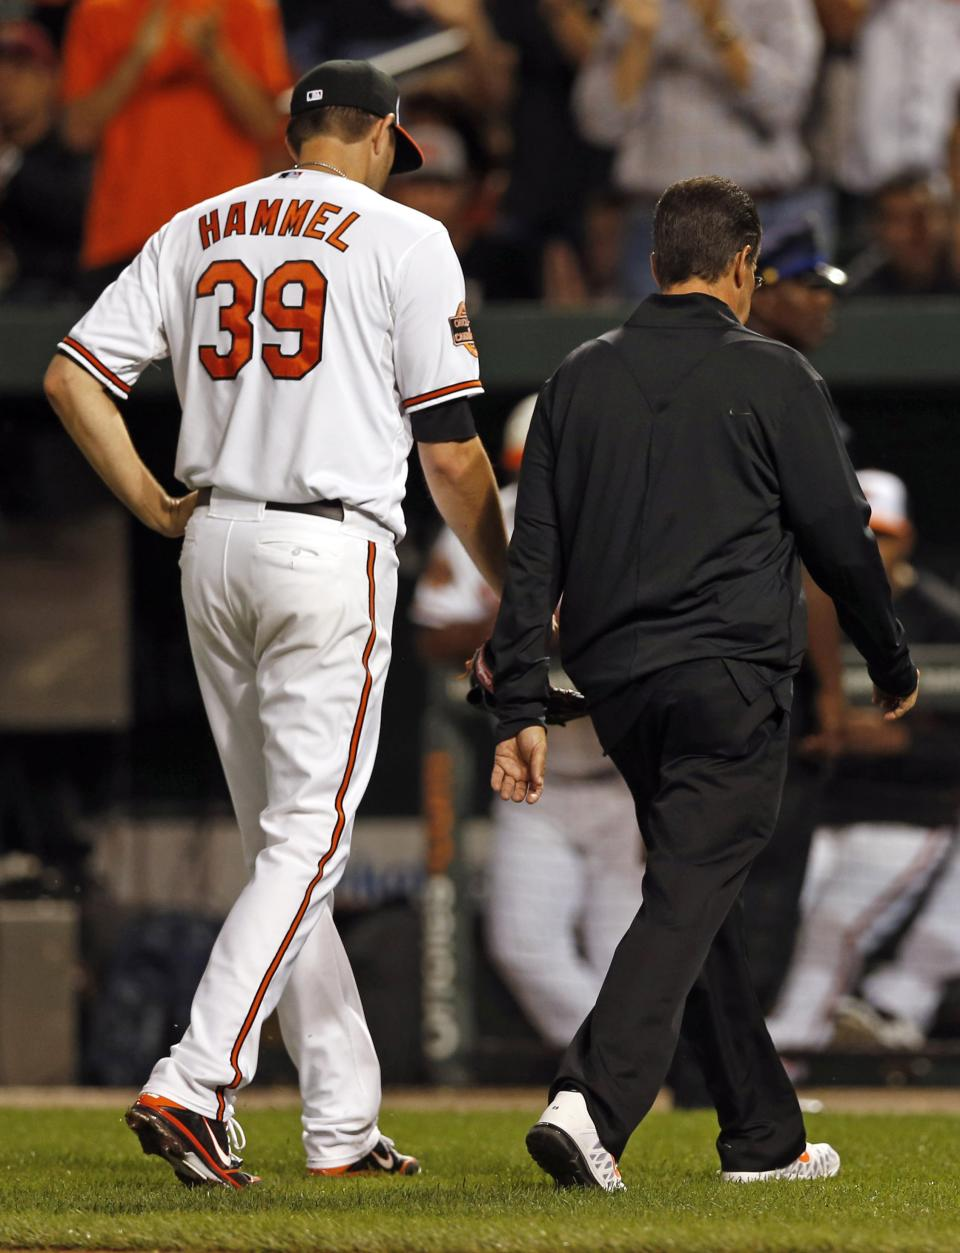 Baltimore Orioles starting pitcher Jason Hammel, left,  walks off the field with trainer Richie Bancells after he injured his right knee in the fourth inning of a baseball game against the Tampa Bay Rays in Baltimore, Tuesday, Sept. 11, 2012. (AP Photo/Patrick Semansky)